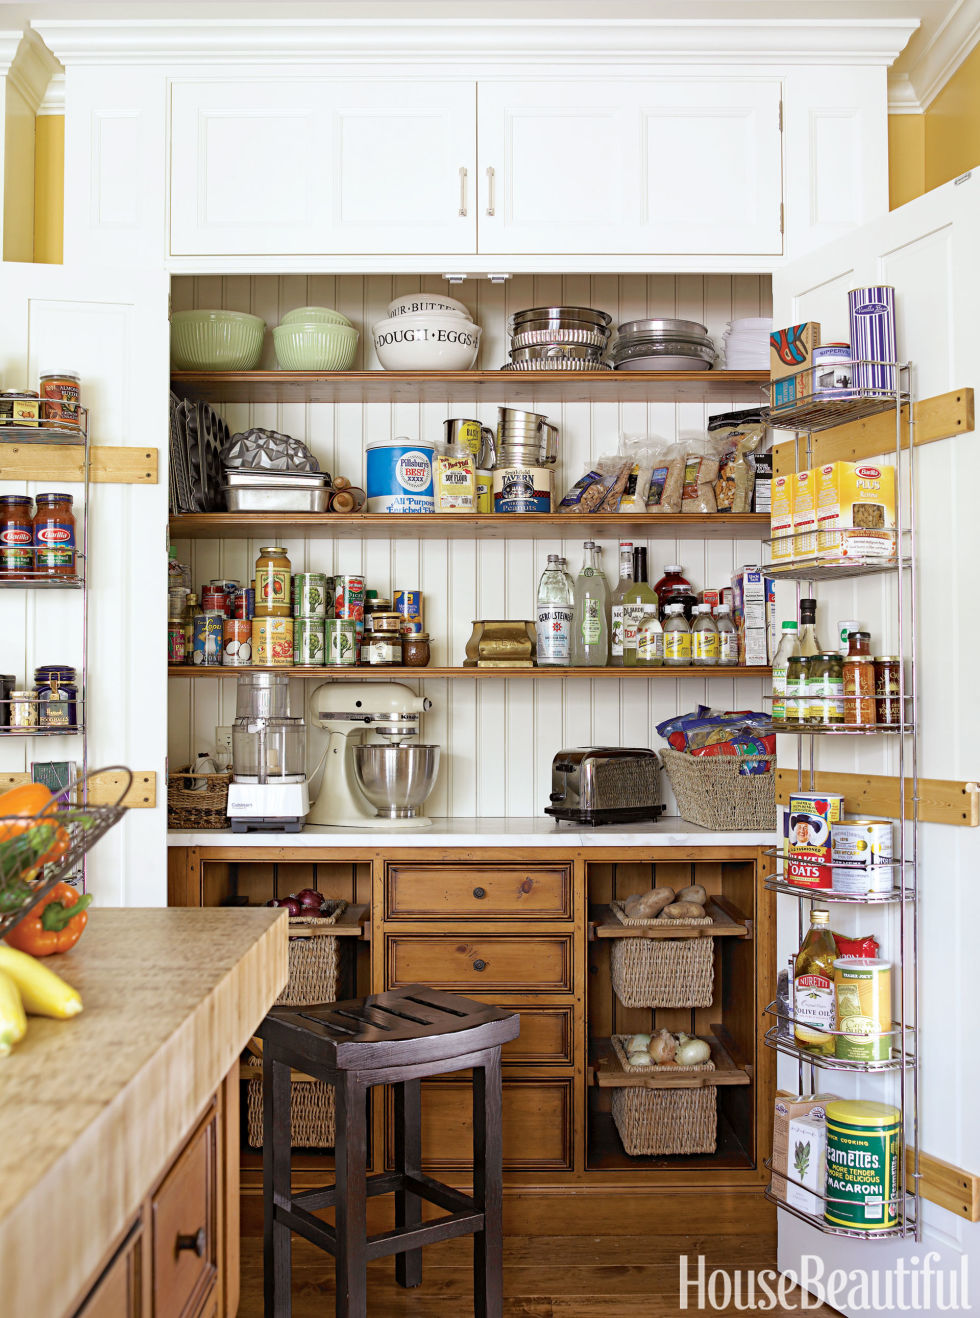 20 unique kitchen storage ideas easy storage solutions for kitchens. beautiful ideas. Home Design Ideas